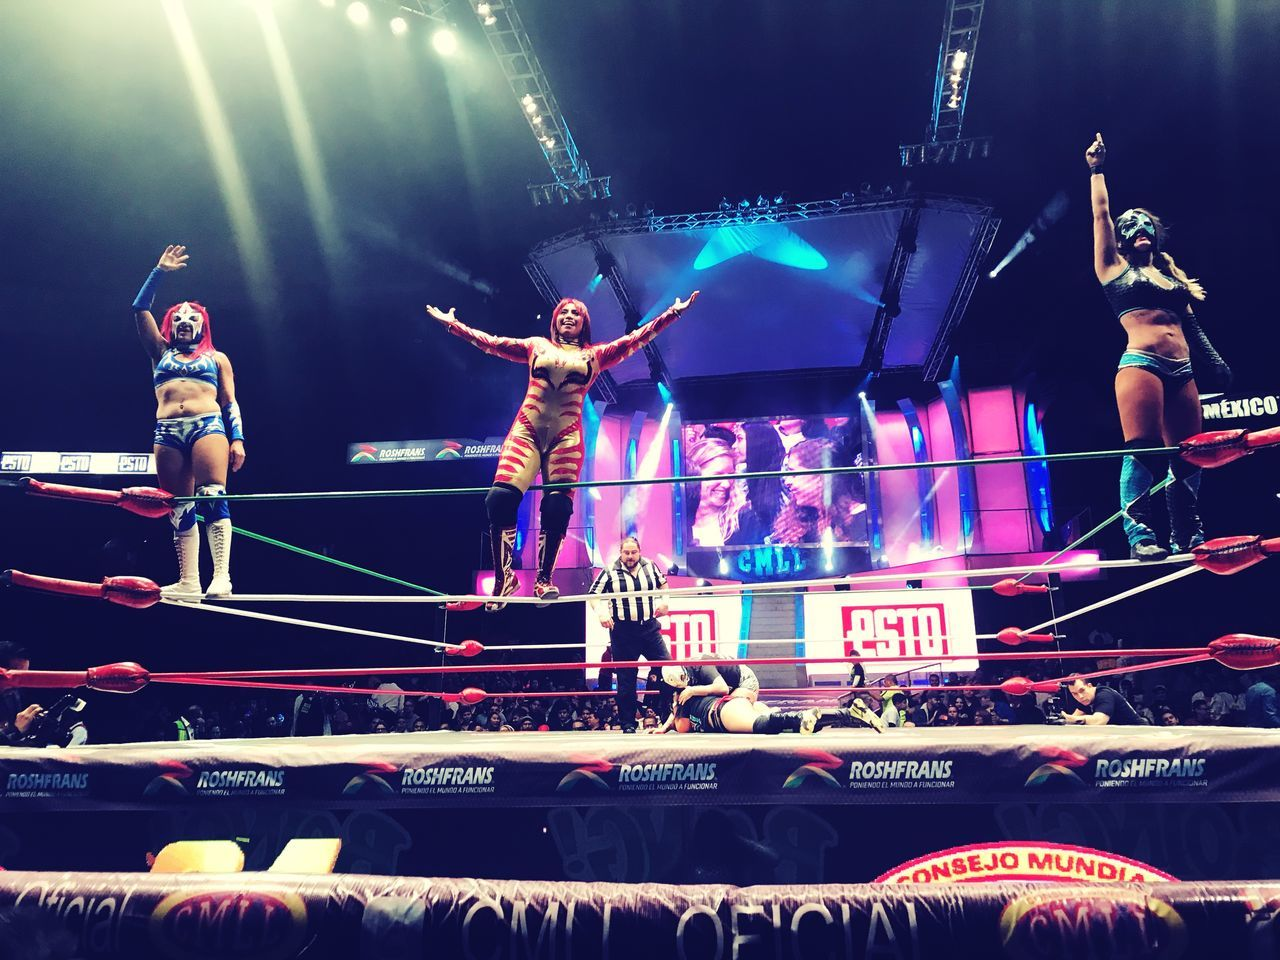 Wemen Lucha Libre Wrestling Performance Audience Arts Culture And Entertainment Illuminated Large Group Of People Real People Night